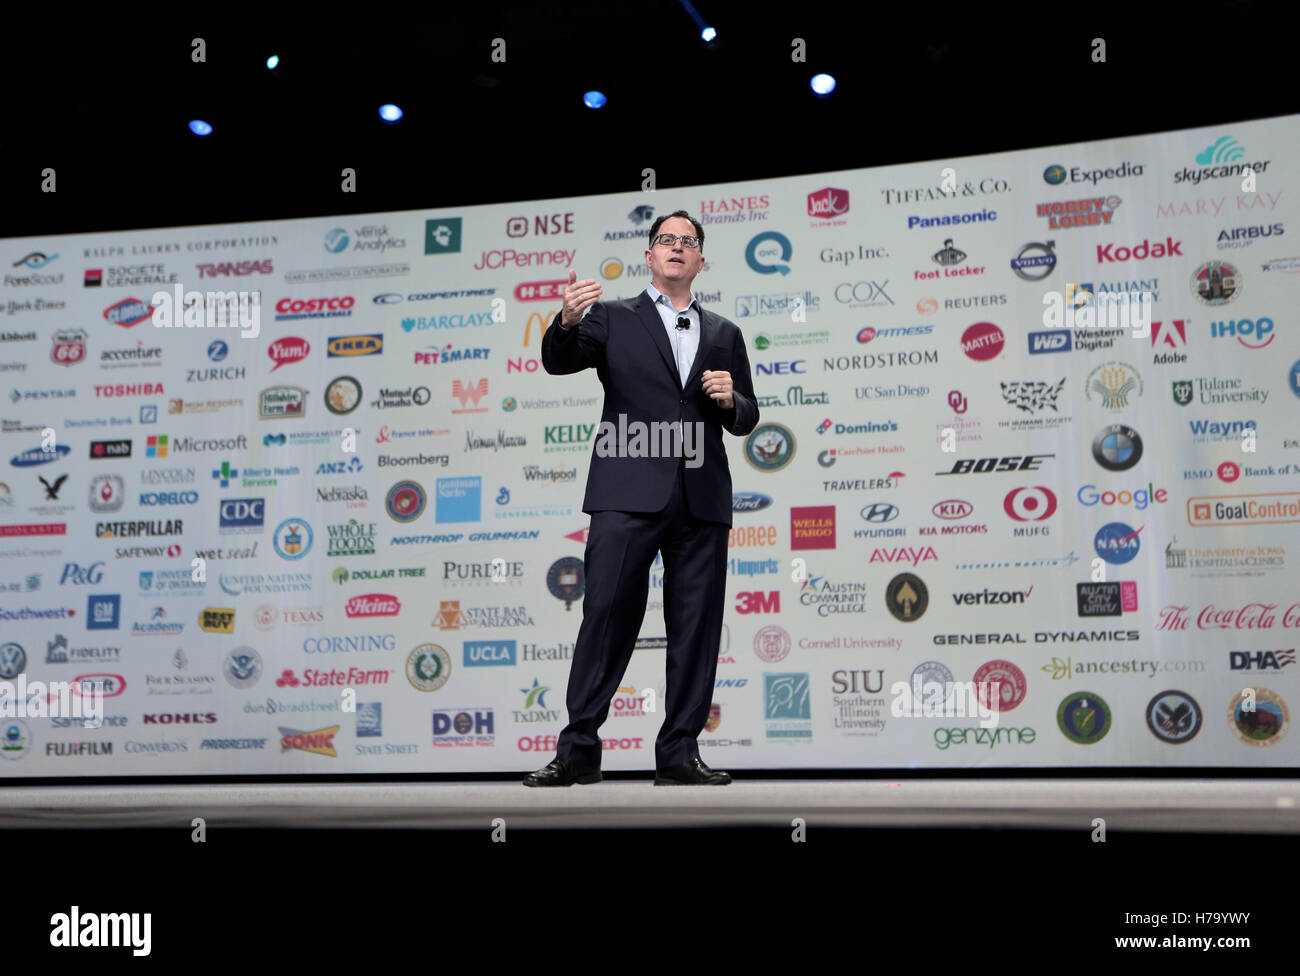 Michael Dell, founder and CEO of Dell Inc., speaks at the Dell World 2015 technology conference in Austin, Texas. Stock Photo